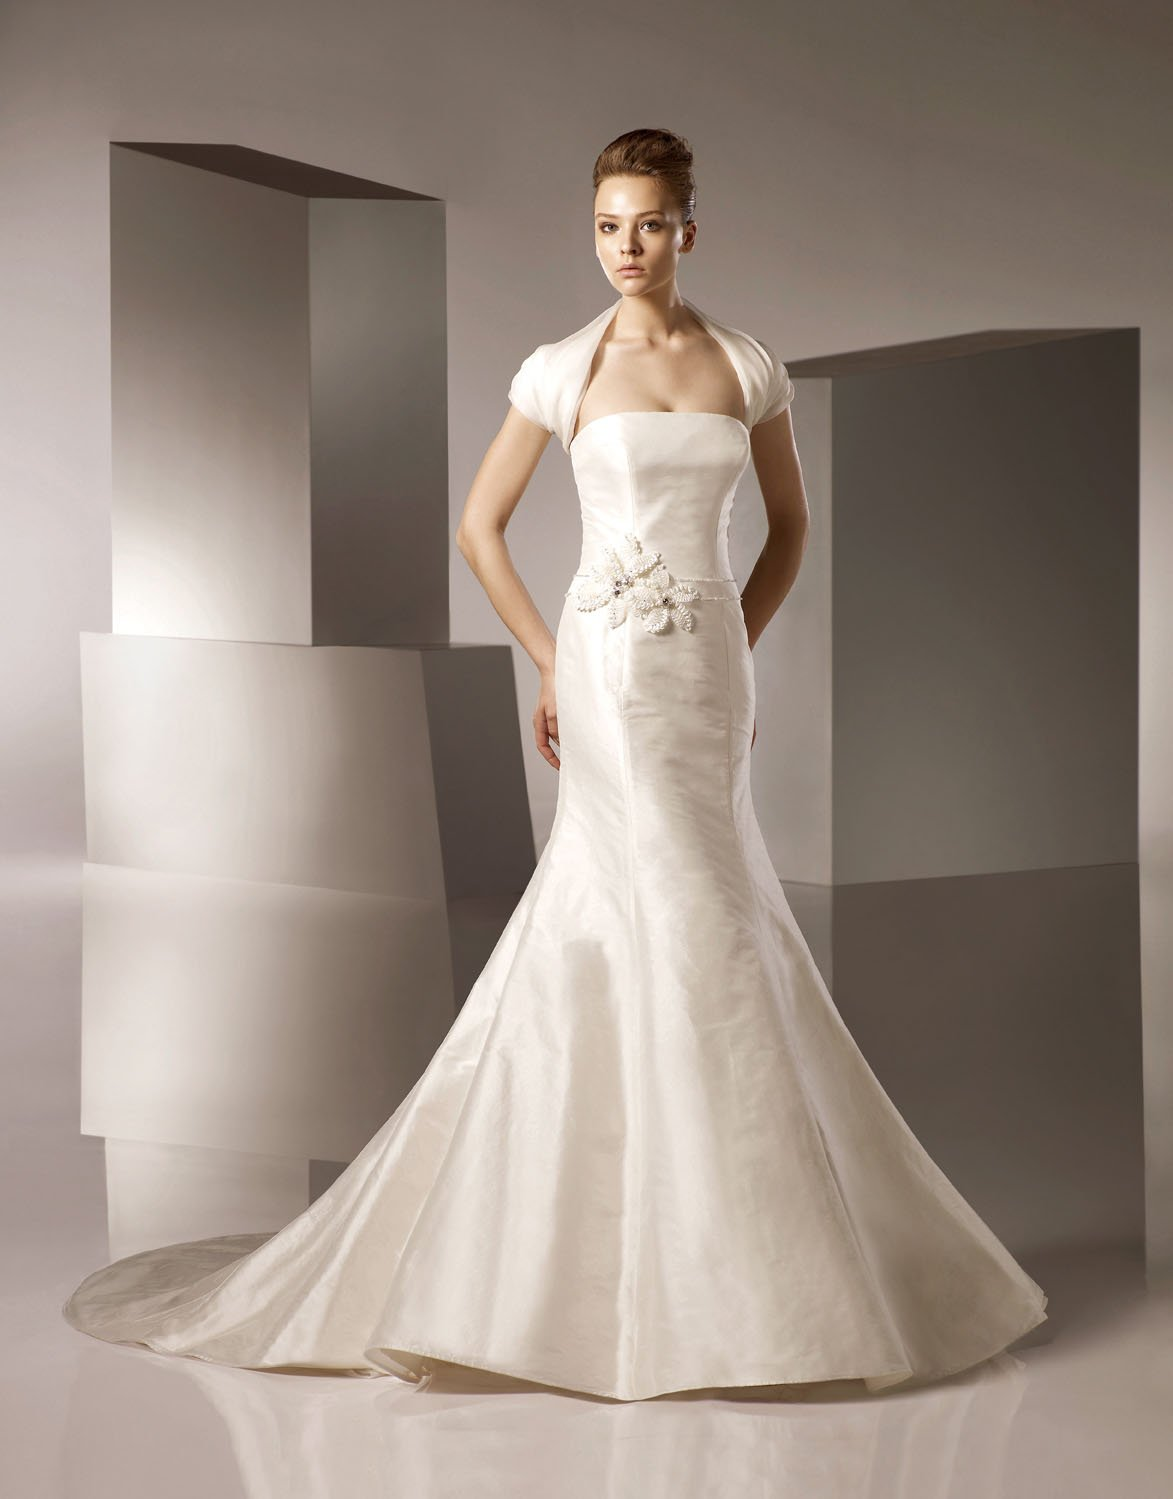 Mermaid Scoop Neckline Strapless Taffeta Wedding Dress Bridal Gown